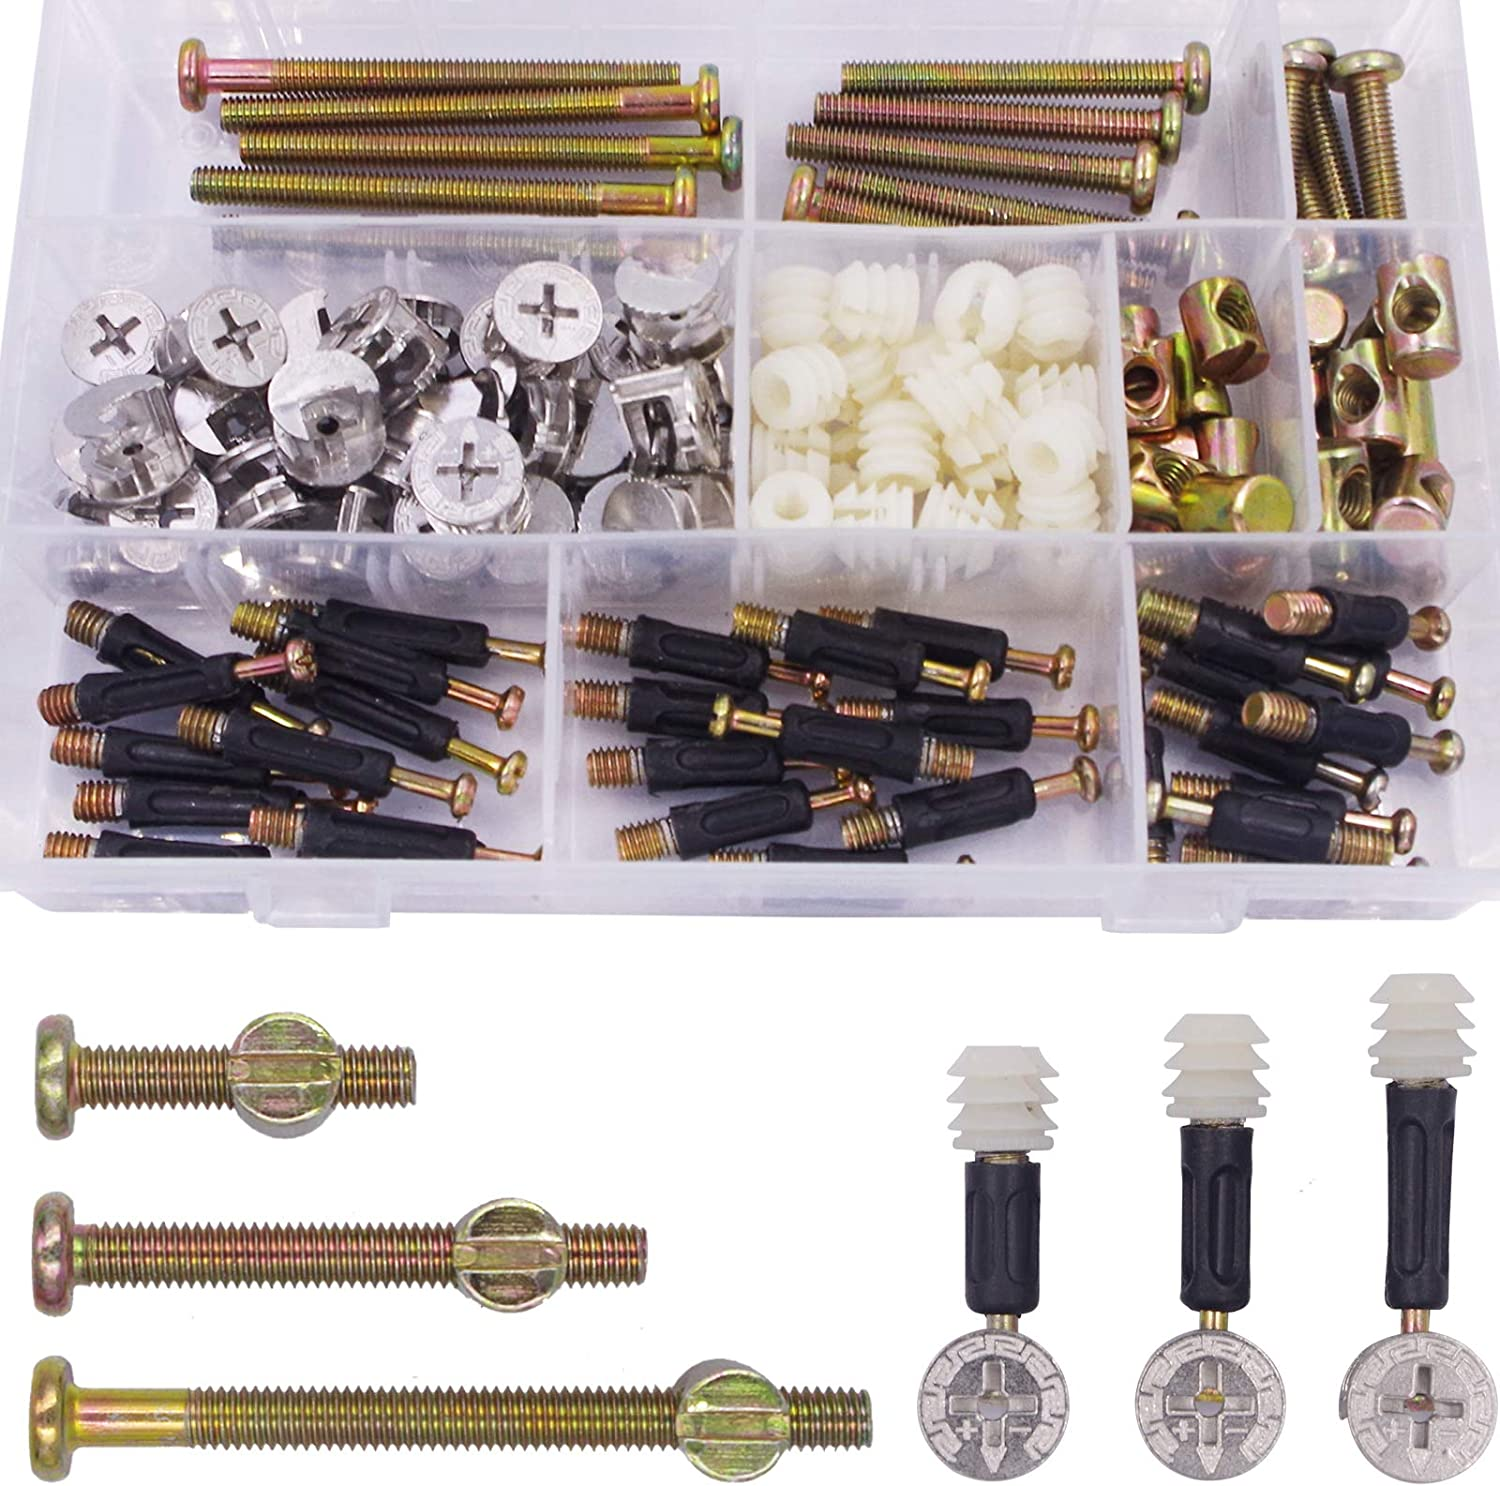 Wolfride Furniture Cam Fitting with Dowel and Pre-Inserted Nut M6x32mm/35mm/40mm M6 Barrel Bolts and Nuts Kit M6x30mm/50mm/70mm